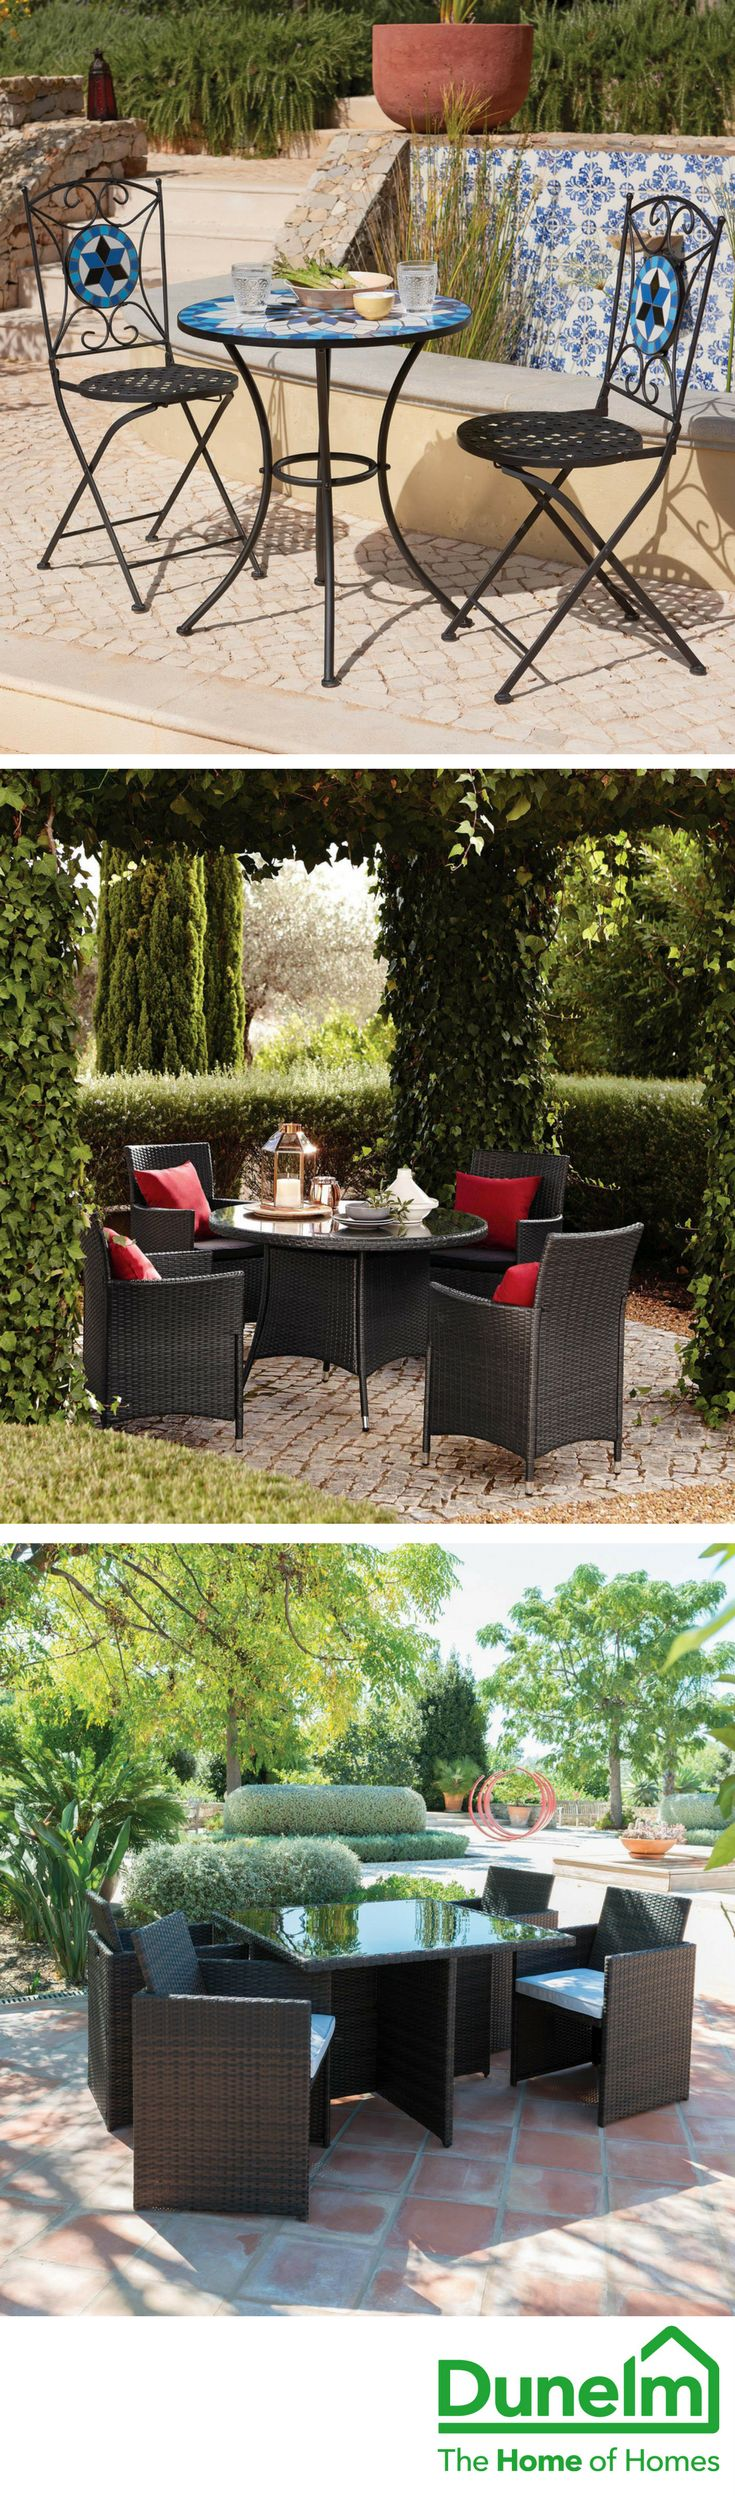 Get the best from your space and craft your favourite sunny spot this summer, with our wide range of garden furniture and accessories. From dining sets and BBQs, to loungers and fire pits, you can maximise the fun outdoors whatever the size of your space